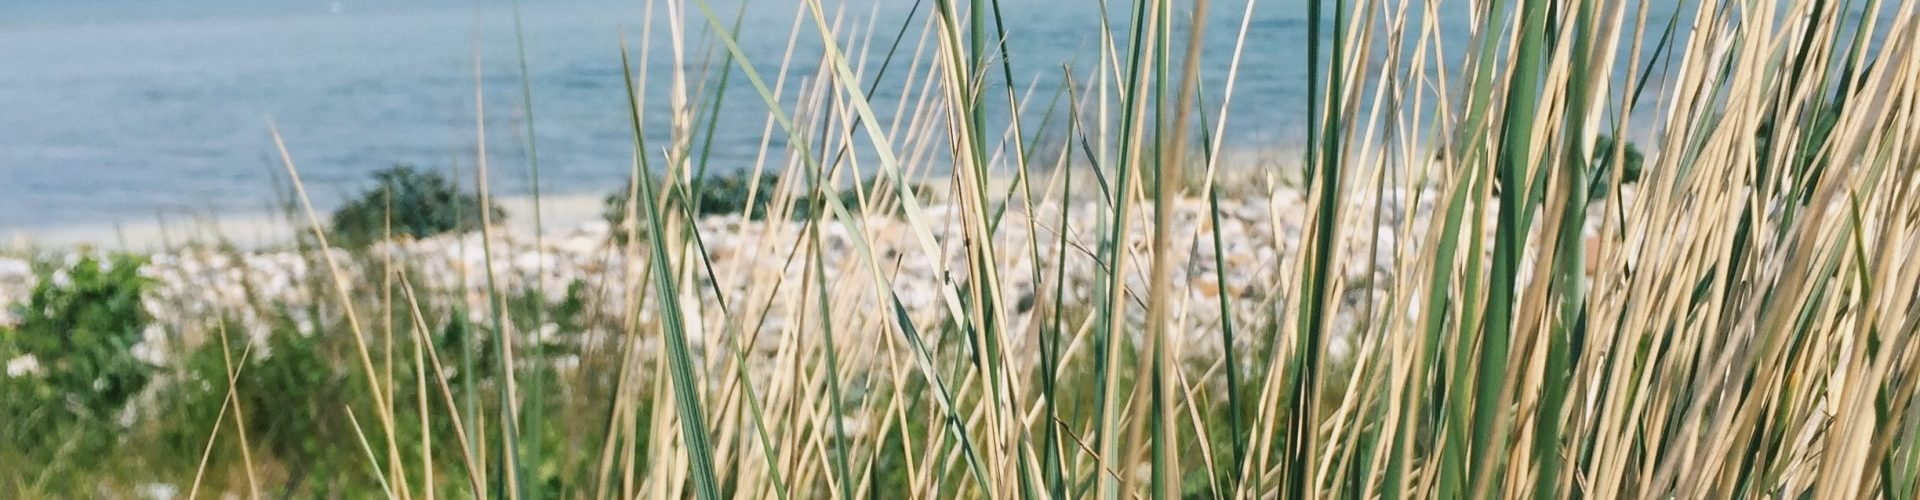 green grass on shore during day